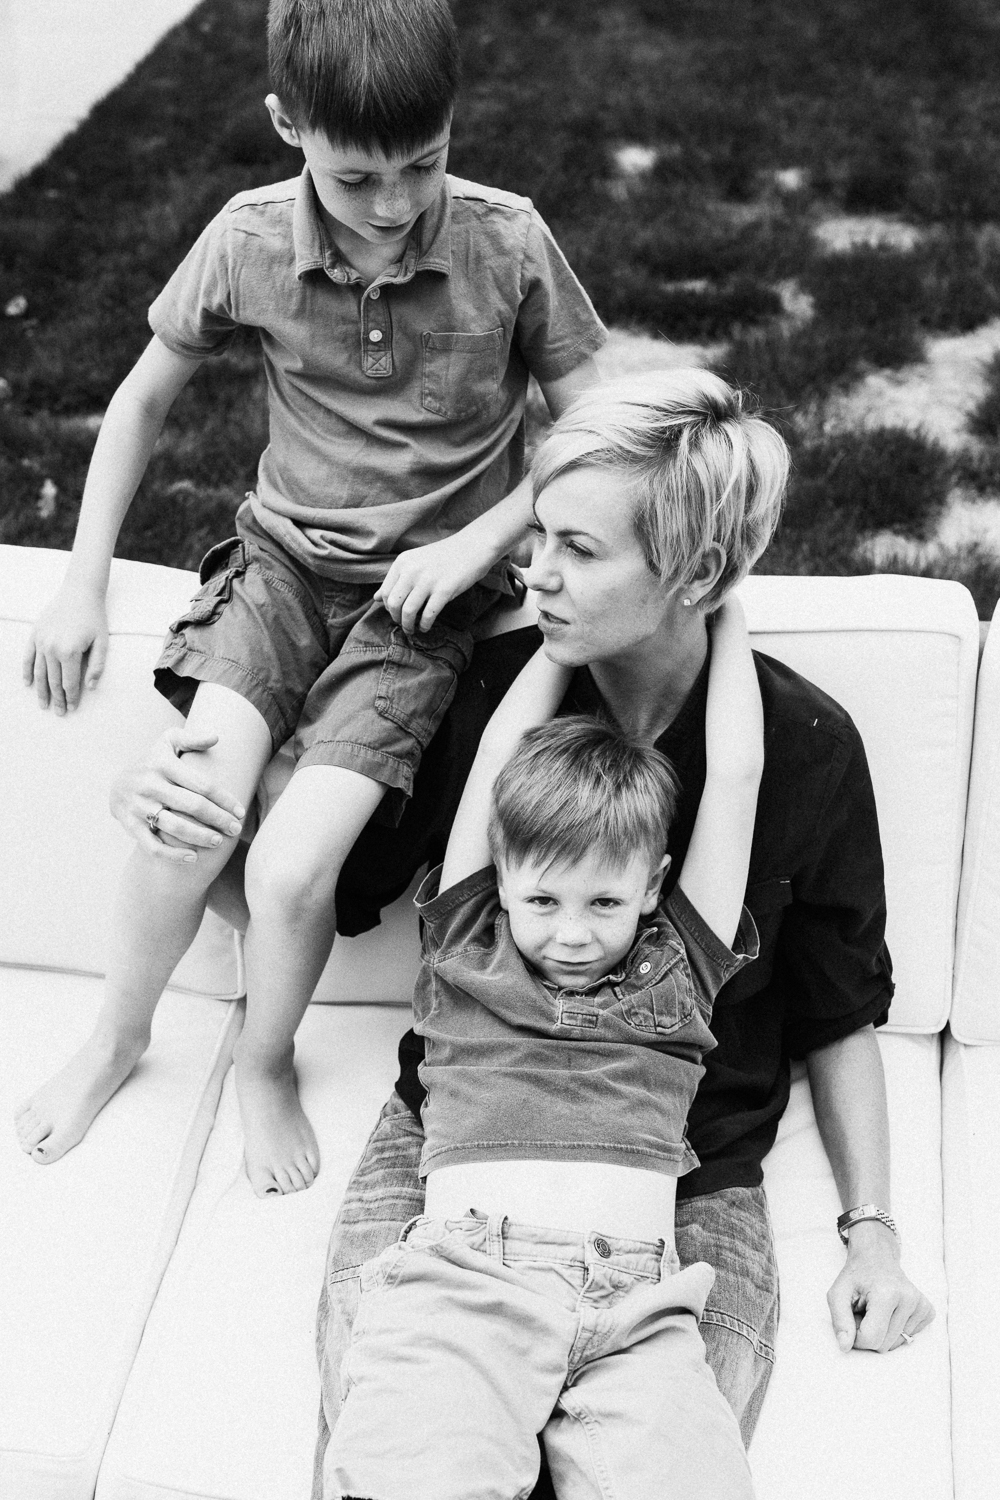 candid-black-and-white-photo-of-mom-and-sons-in-backyard-sugarhouse-utah